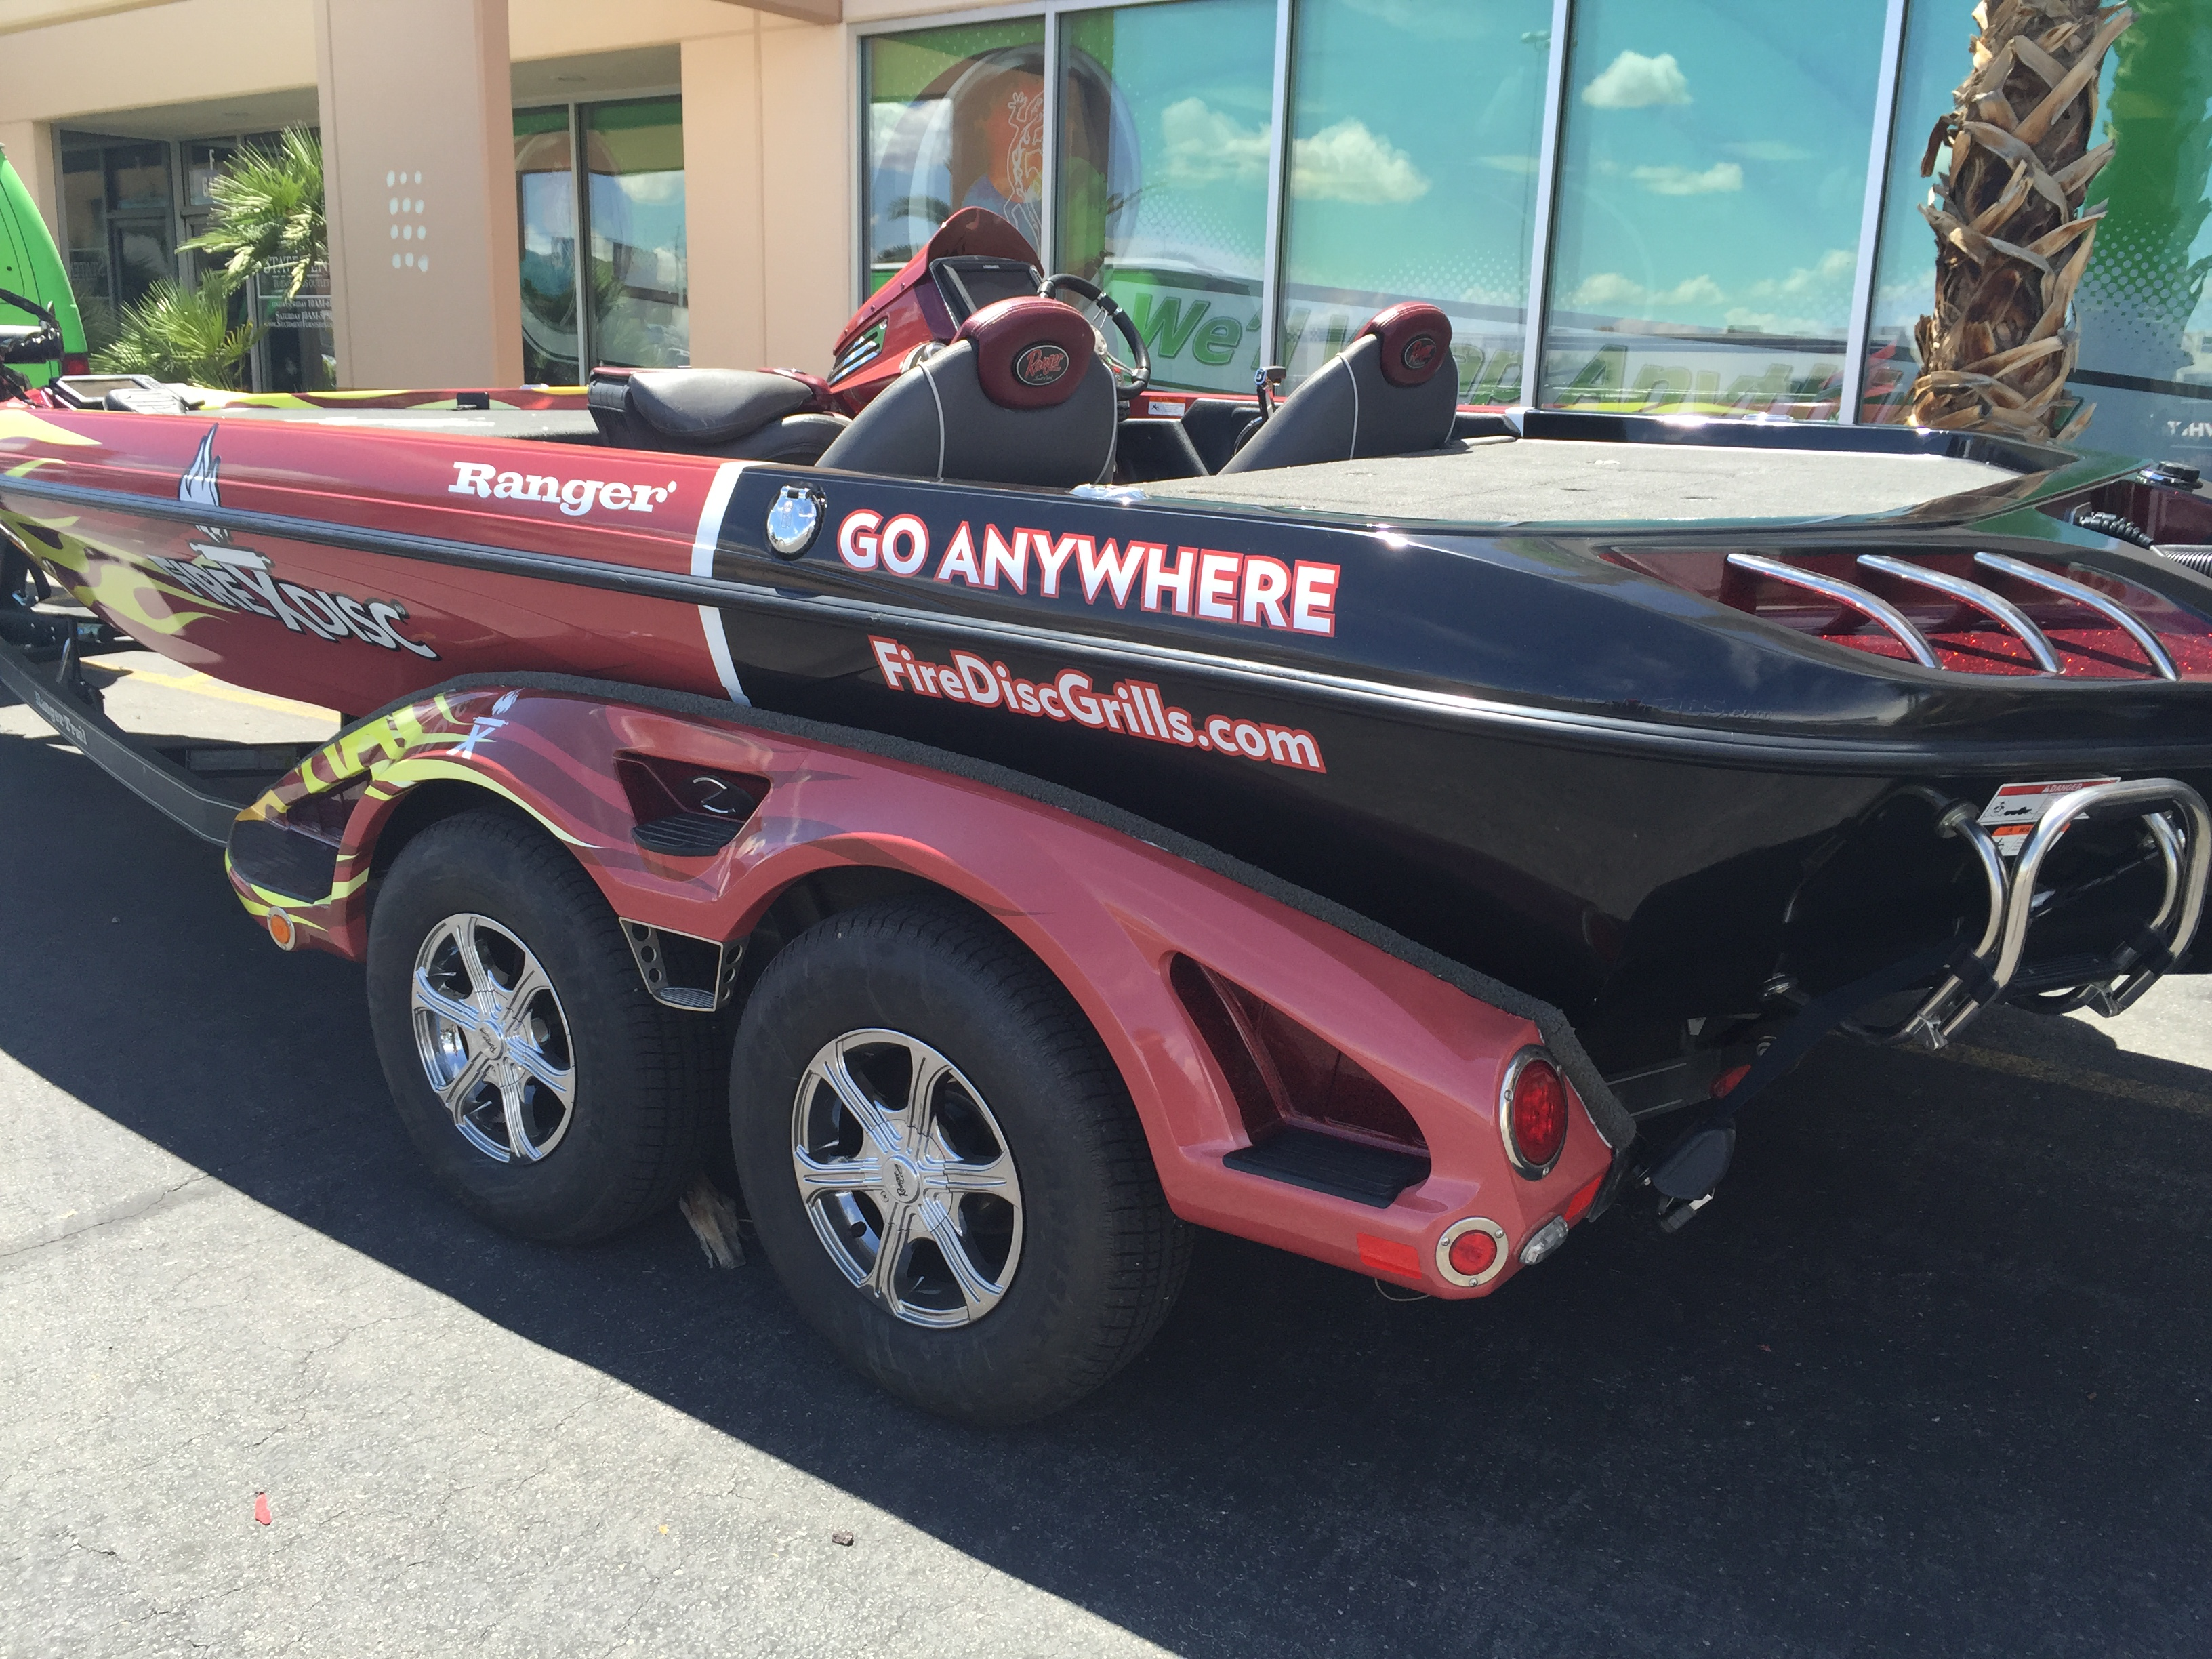 Fire Disk Bass Boat Wrap Geckowraps Las Vegas Vehicle